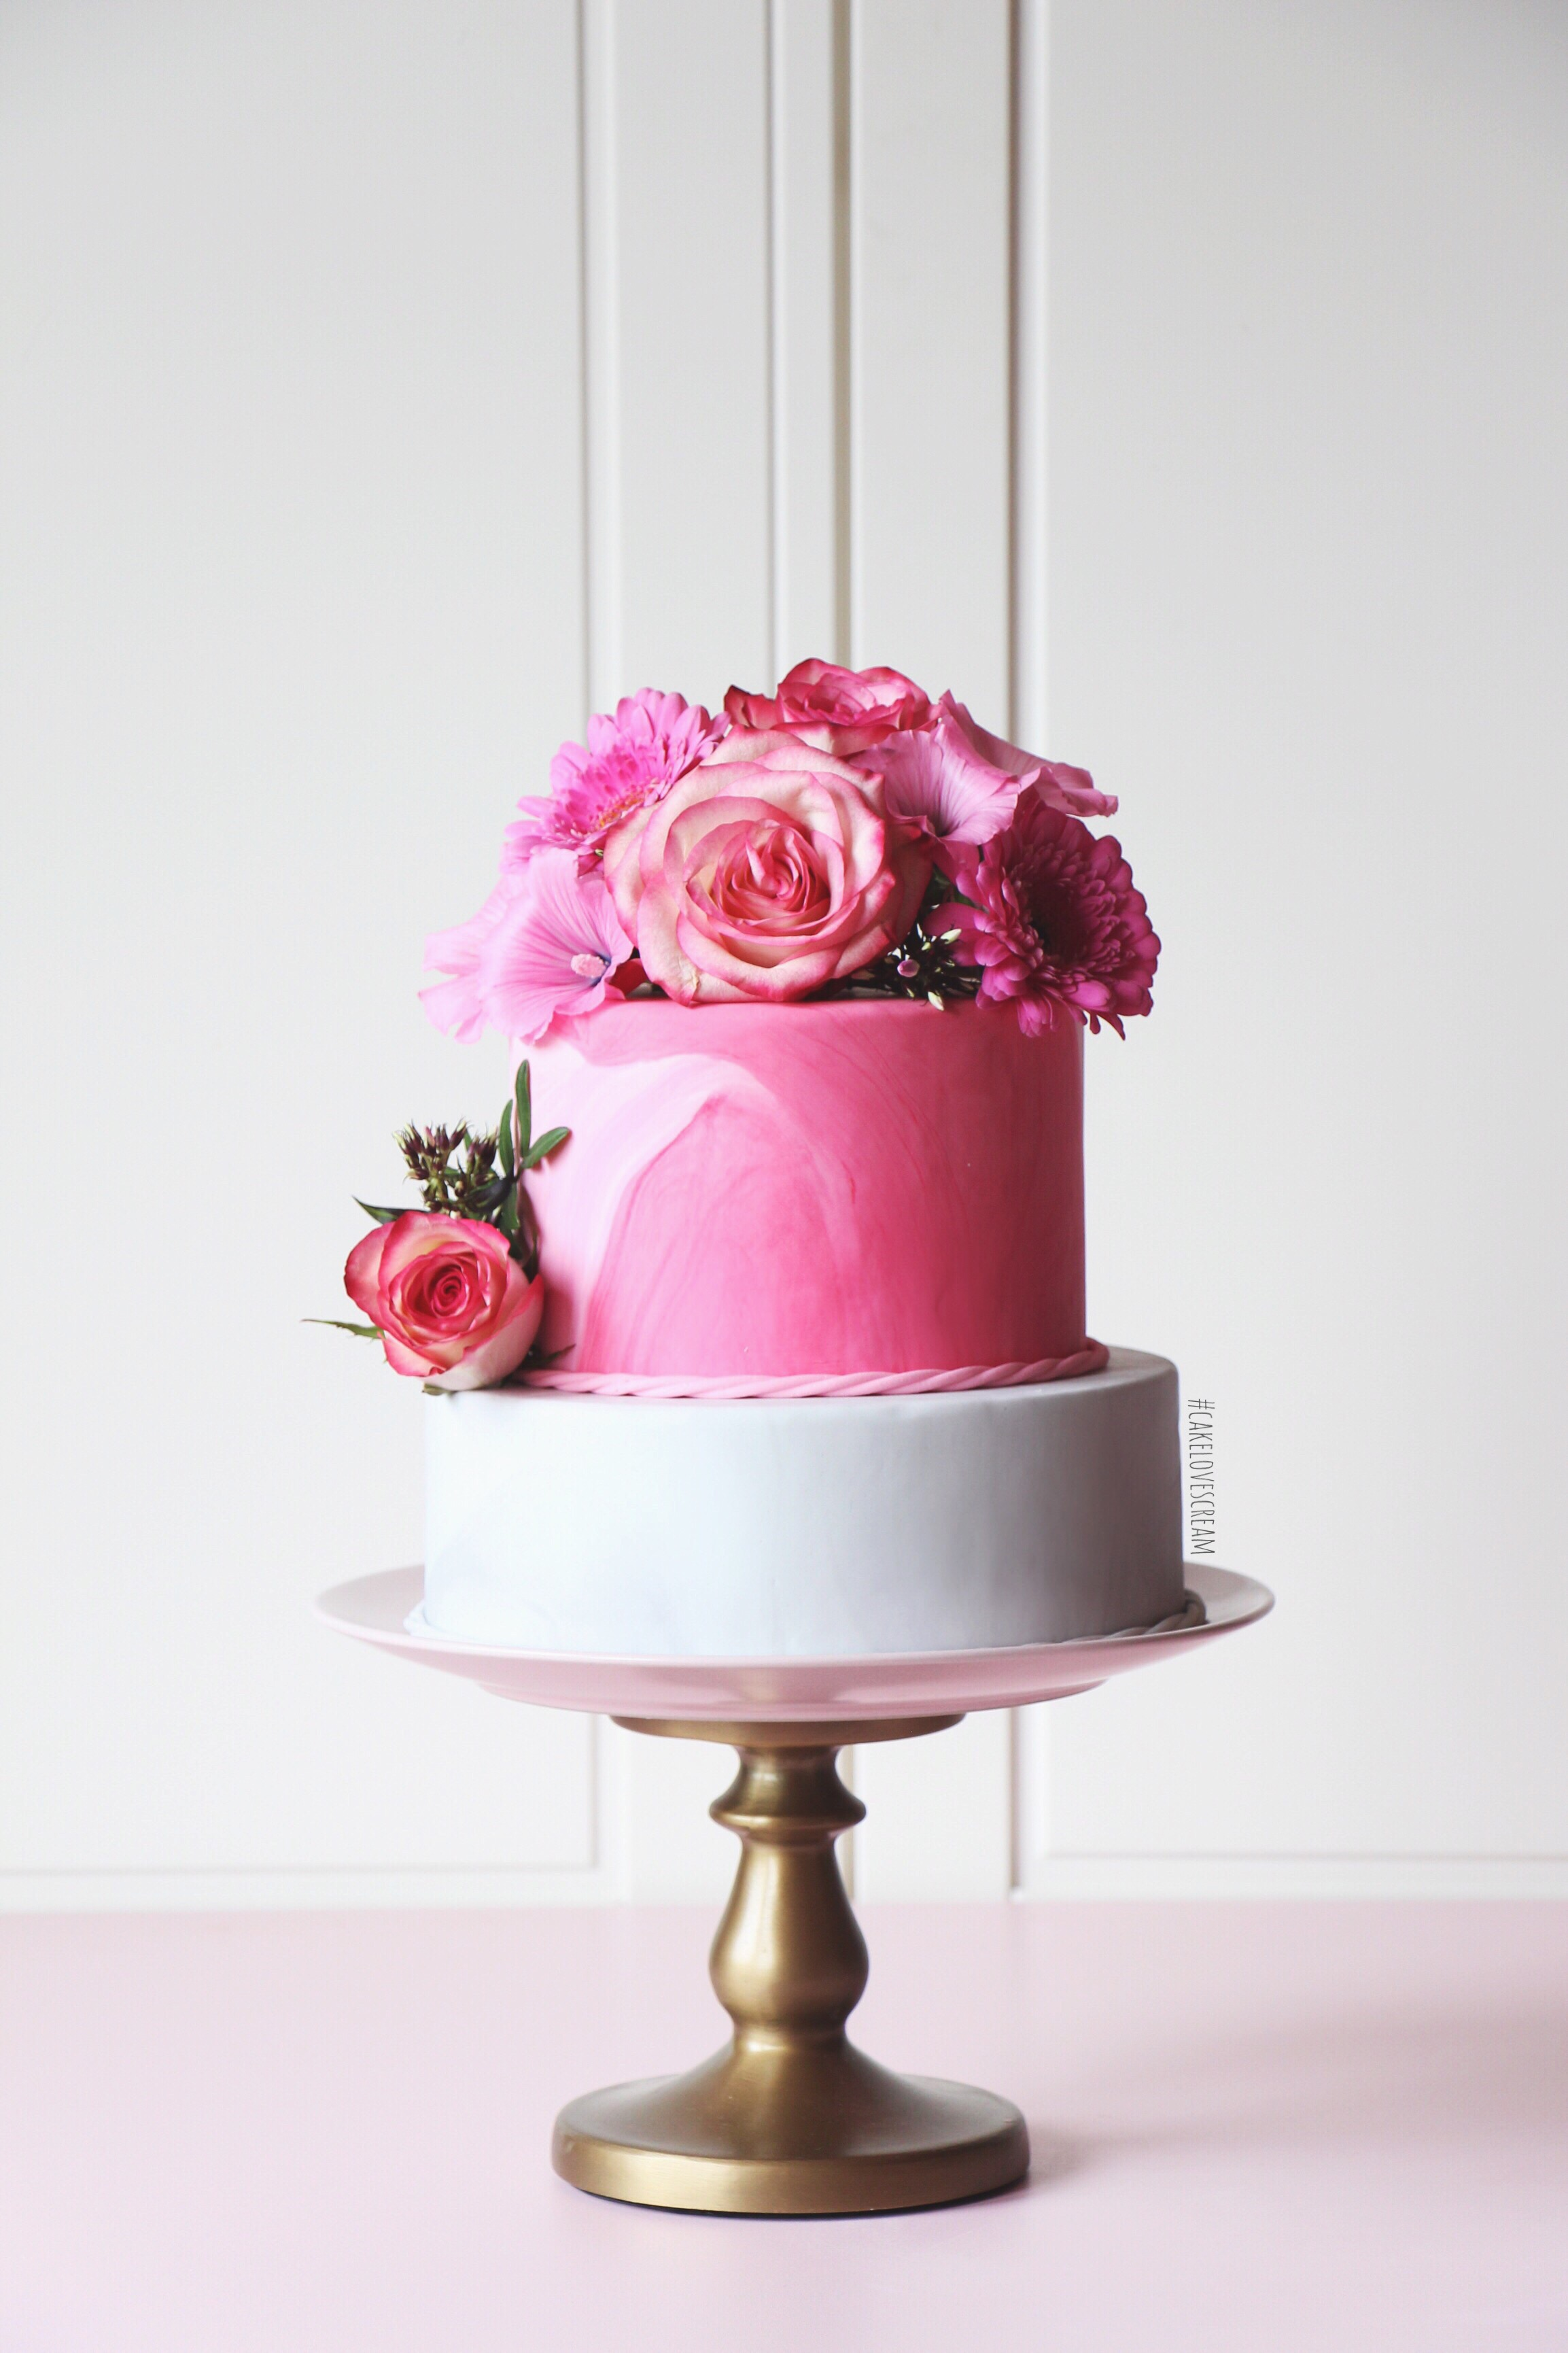 Dark Pink marbled fondant wedding cake with gum paste roses